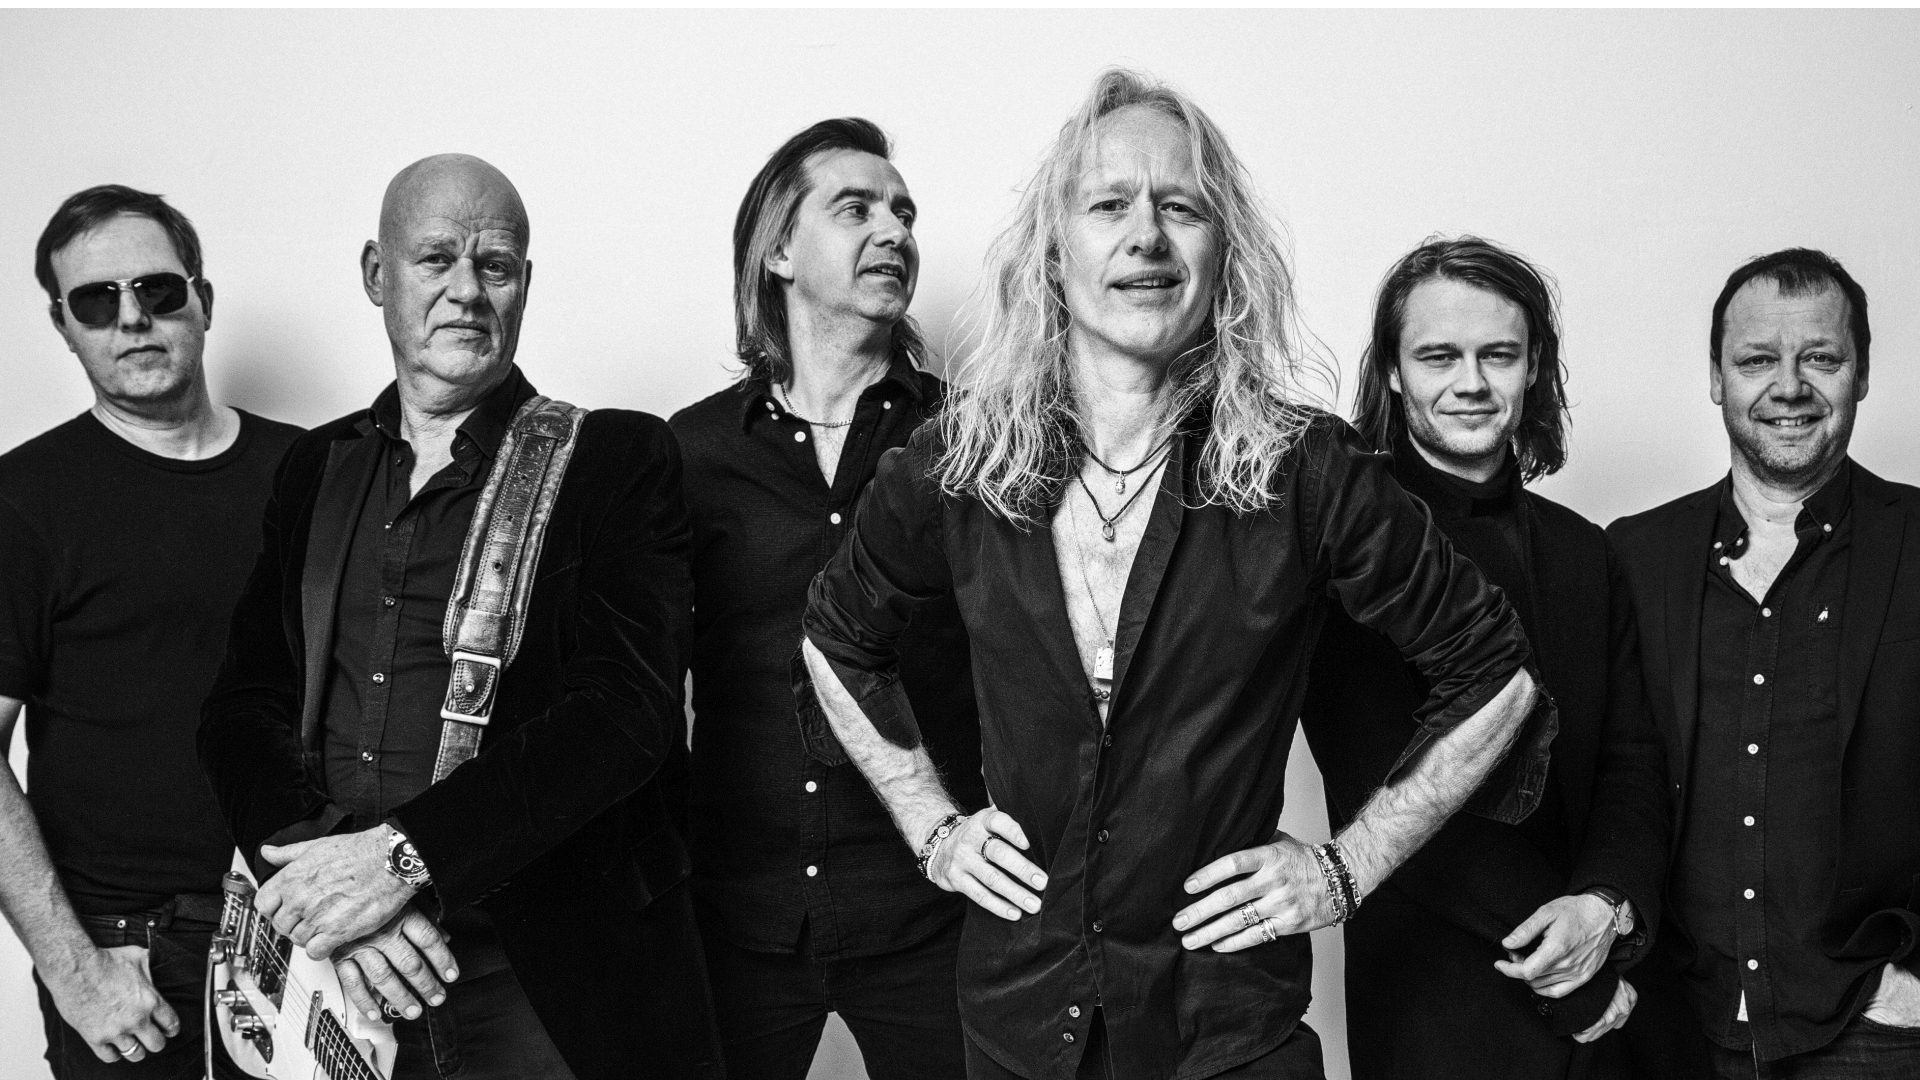 Koncert: Led Zeppelin Jam @ Industrien